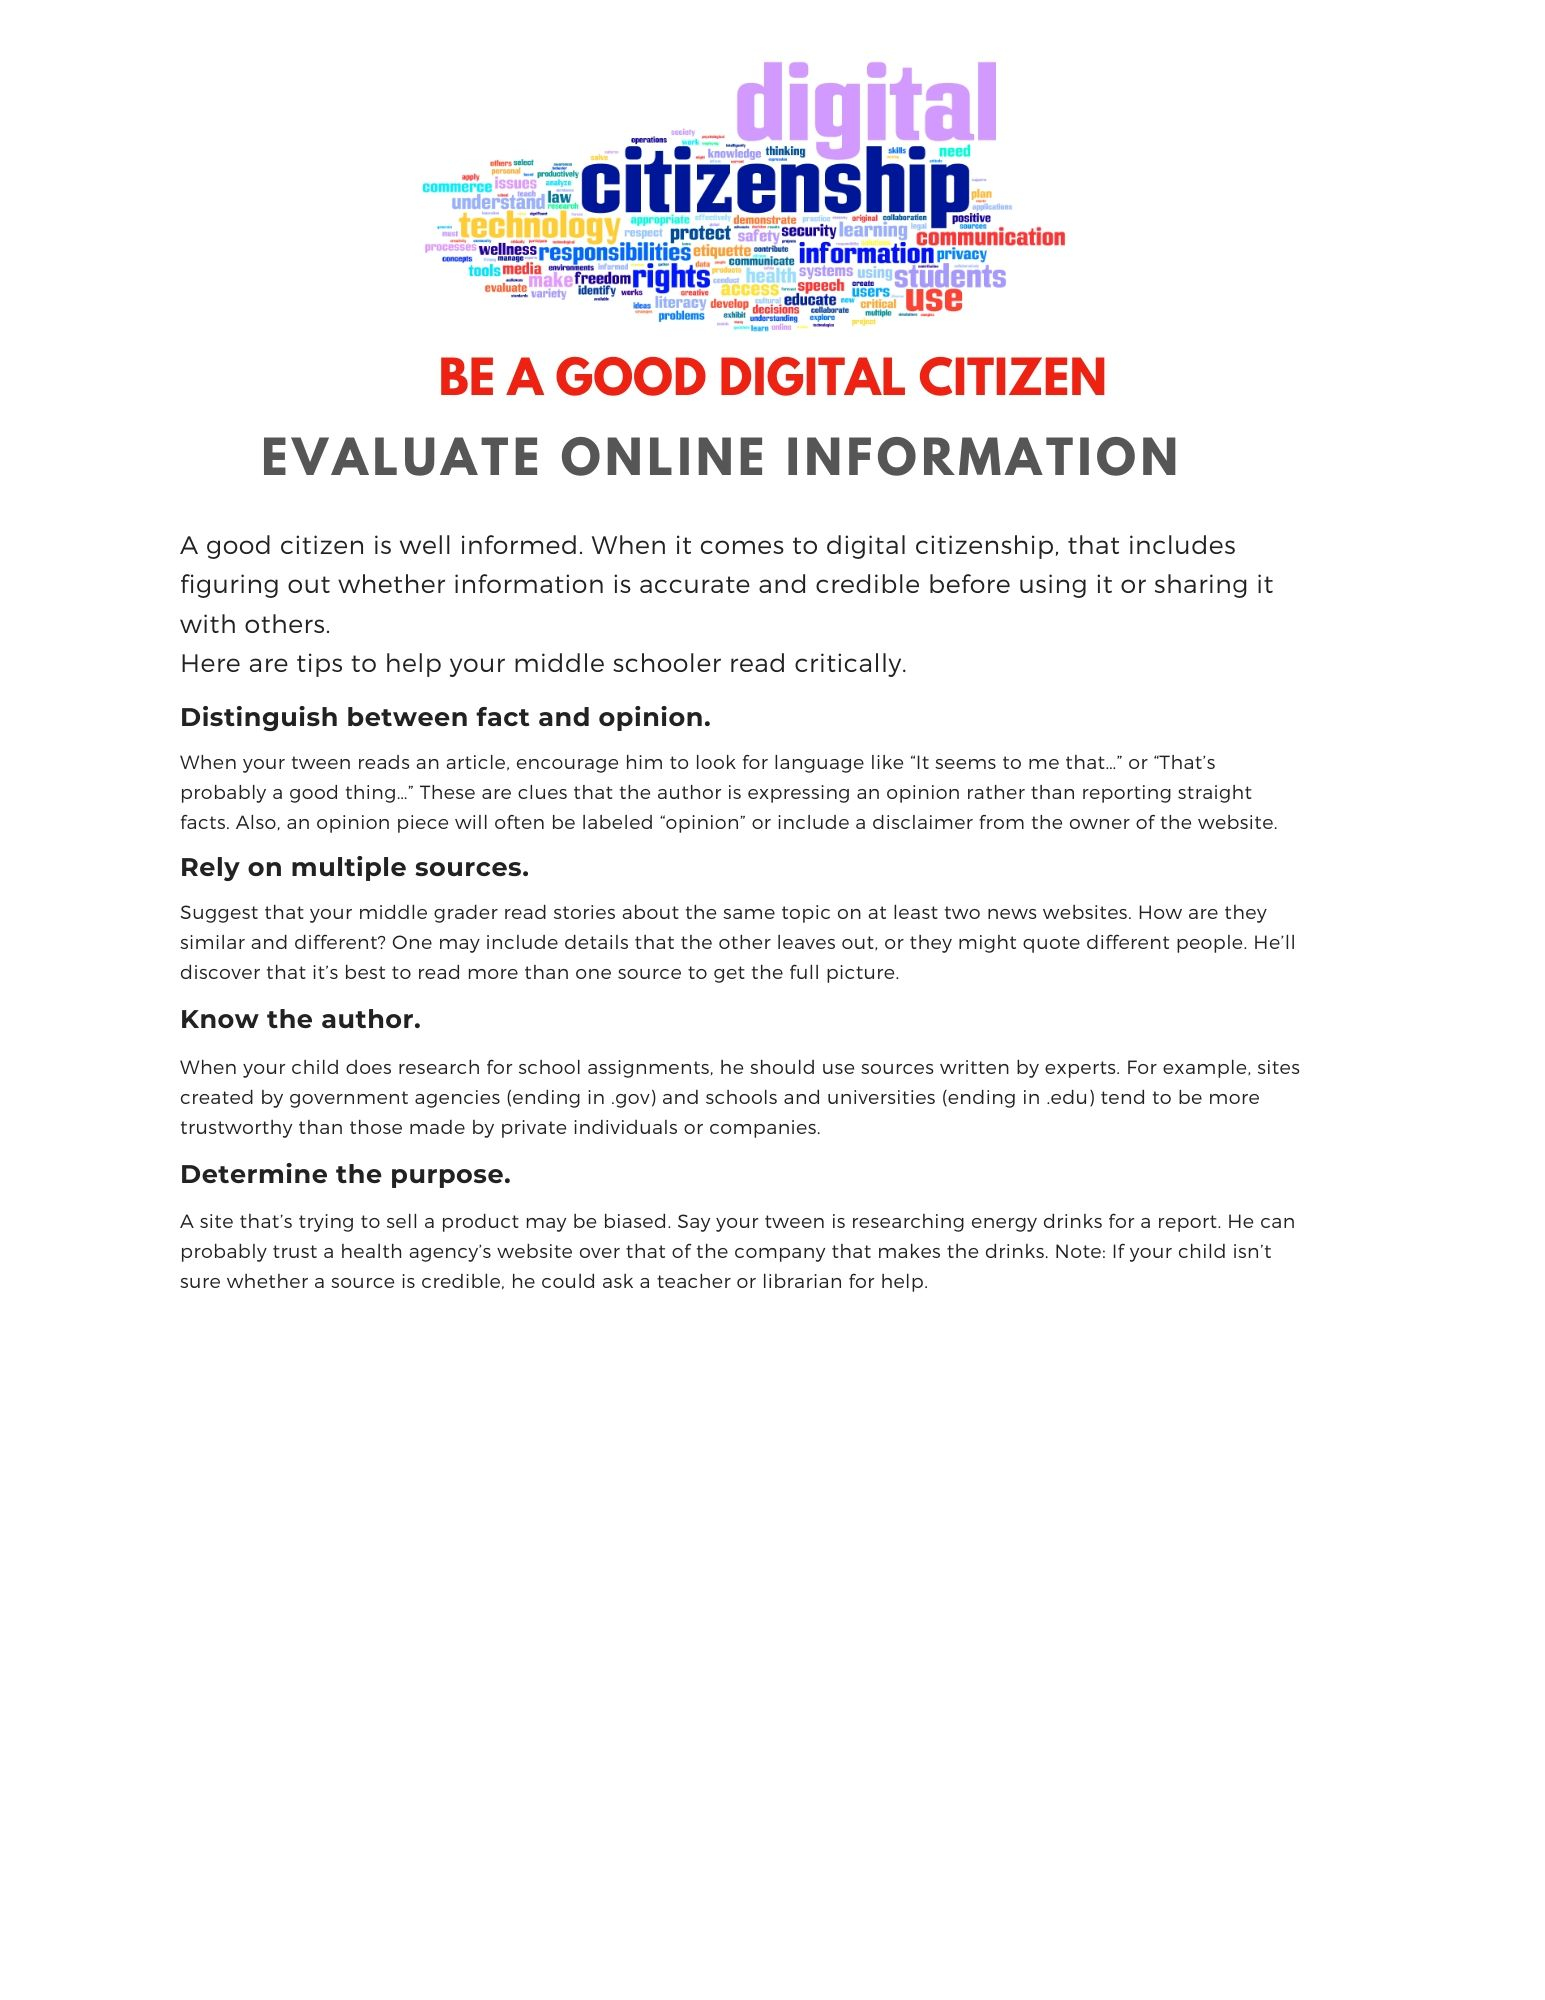 1580314286-digital_citizenship_evaluate_online_info